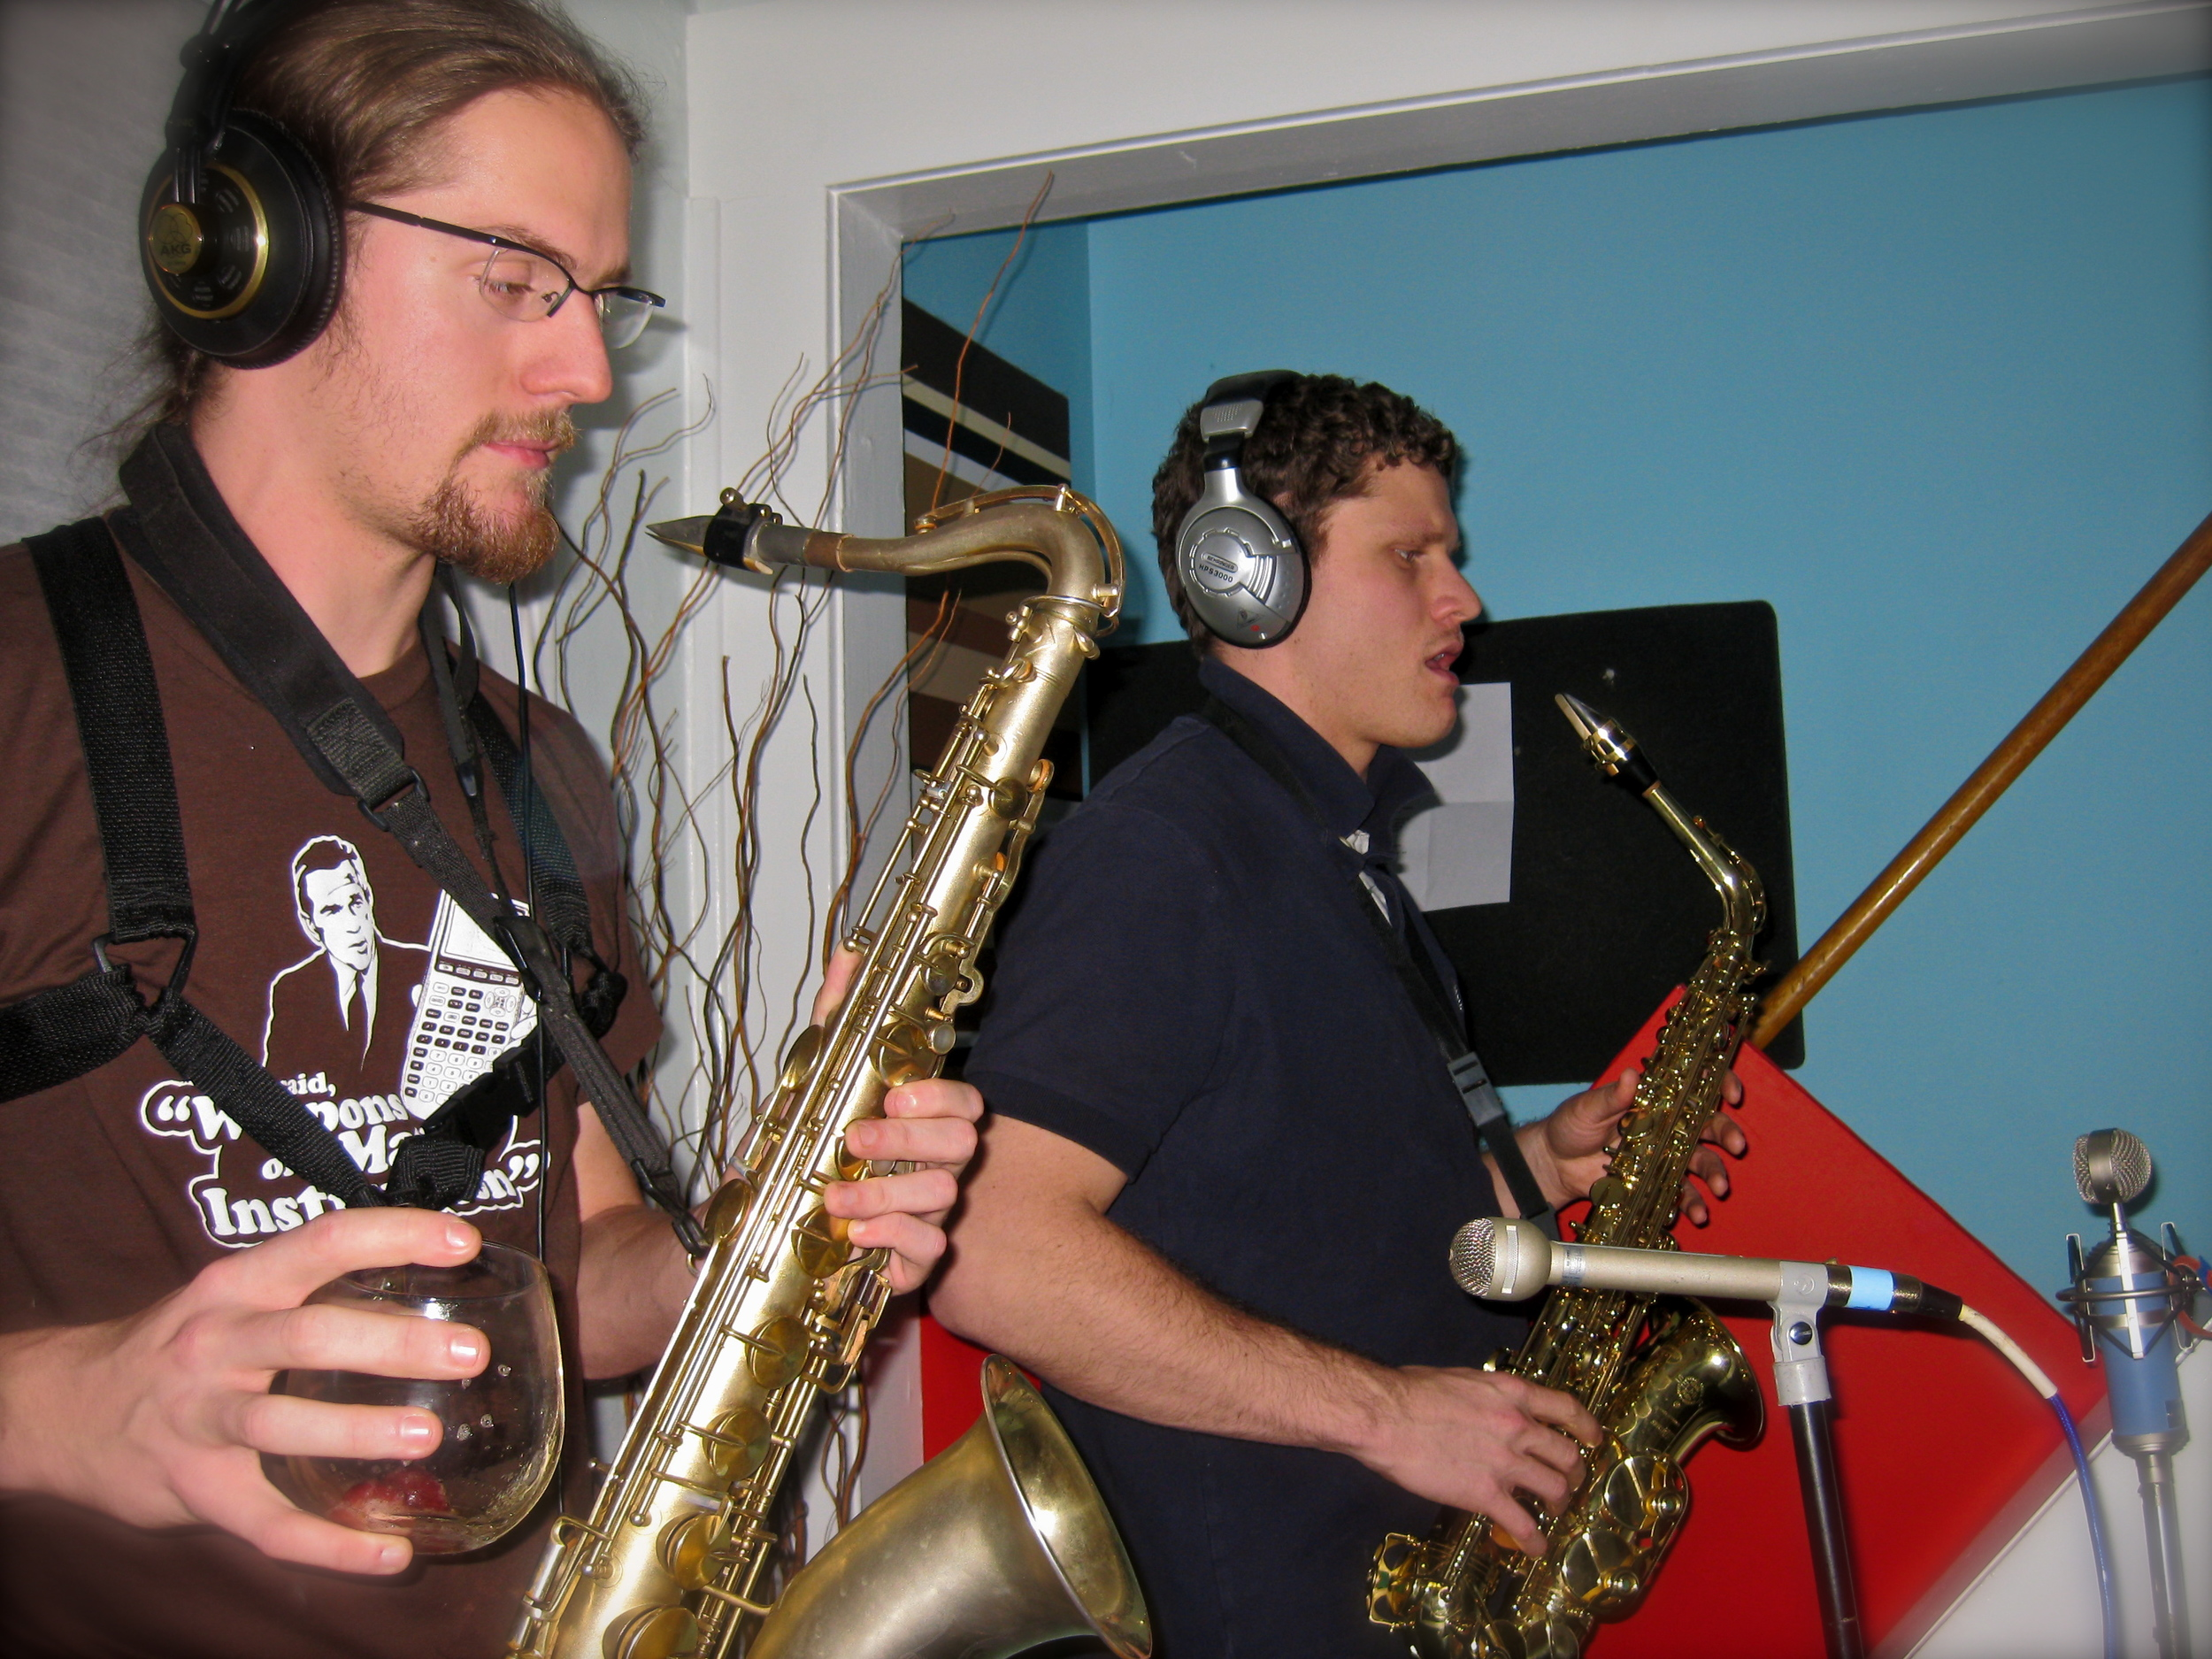 Tracking horns